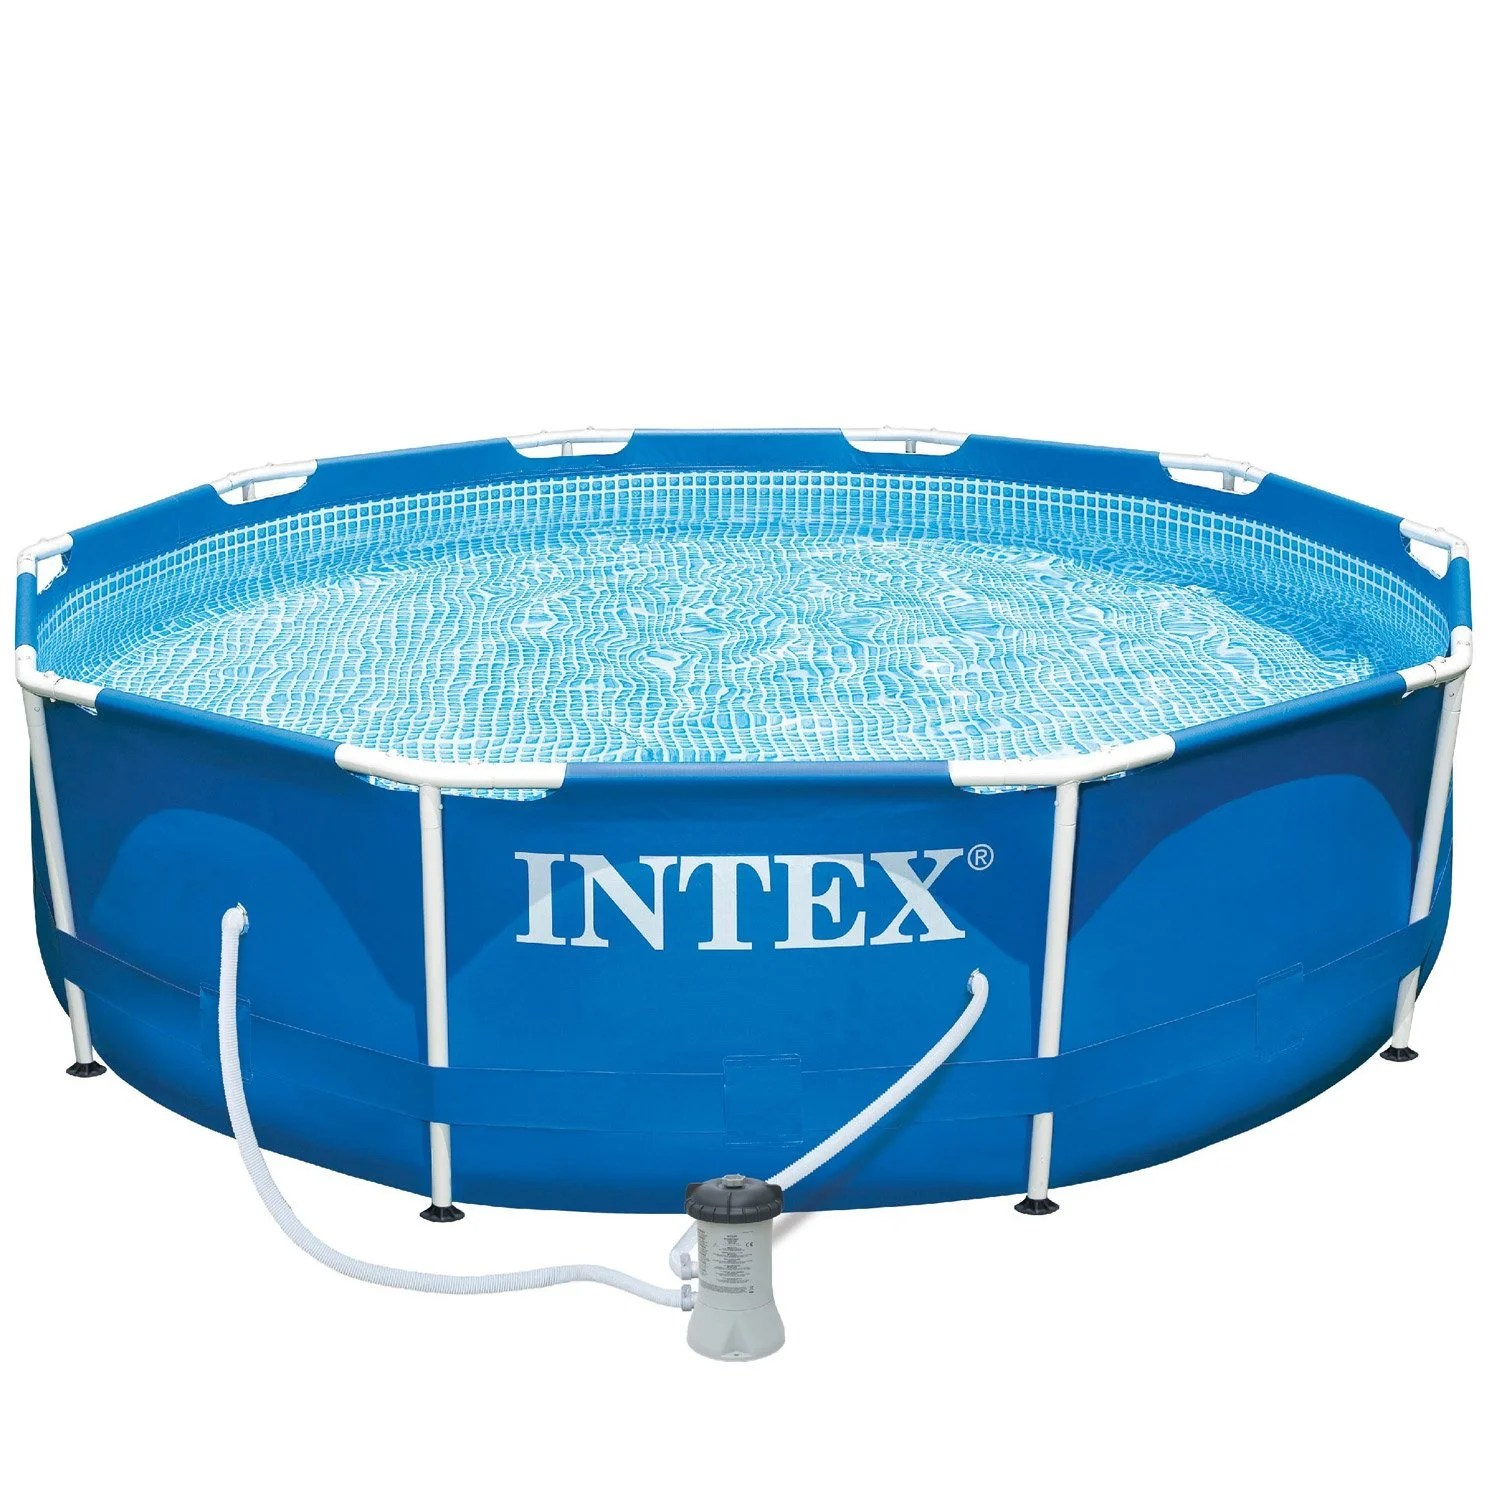 Leroy Merlin Piscine Hors Sol Intex Piscine Hors Sol Autoportante Tubulaire Metal Frame Intex